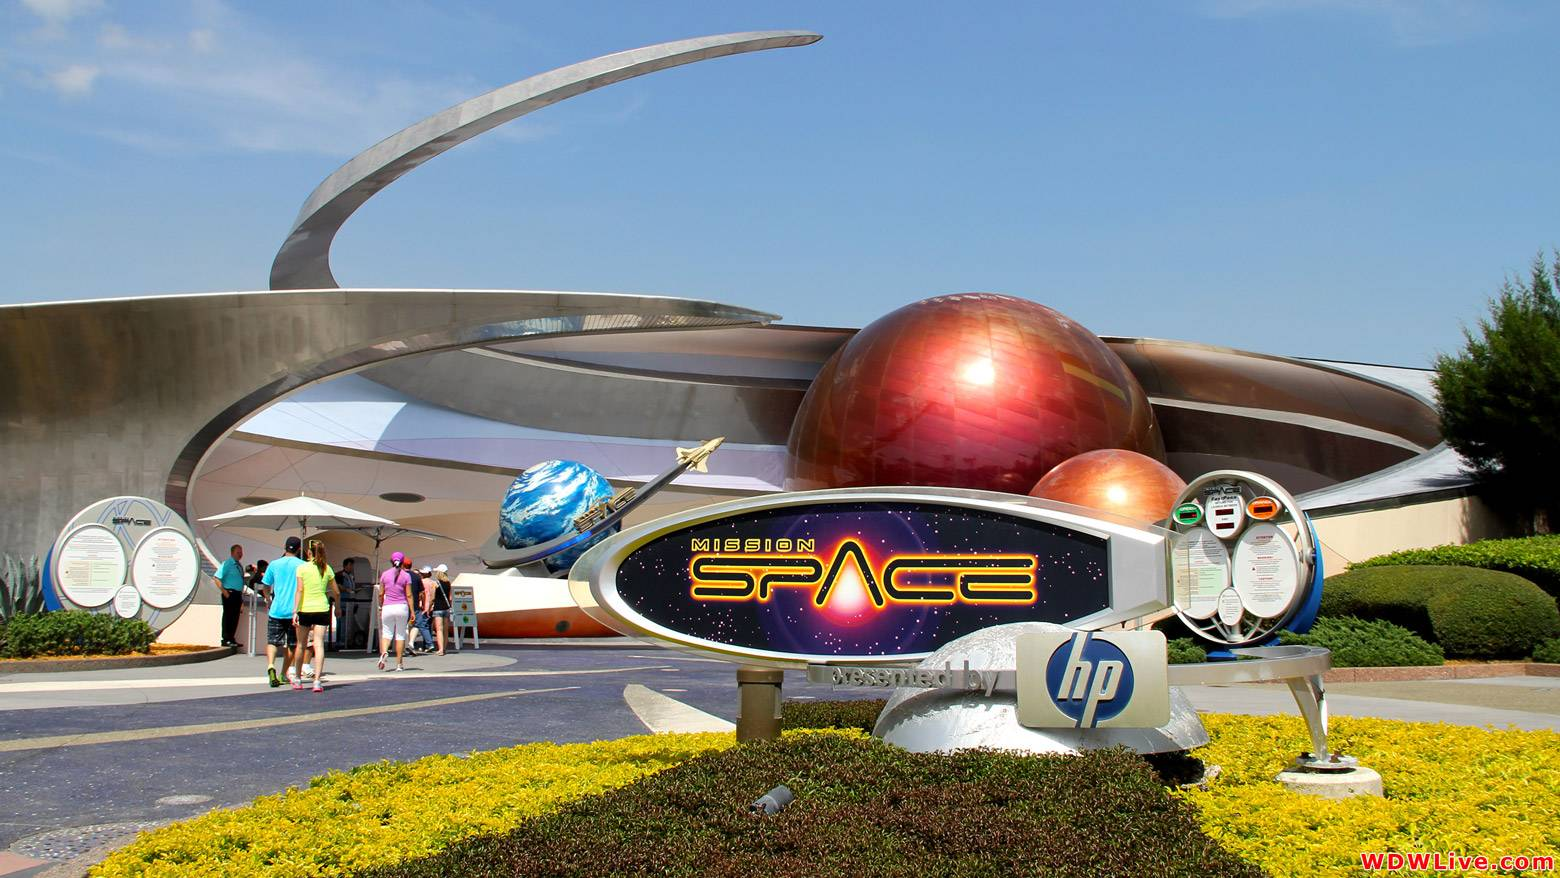 Mission: SPACE no Epcot